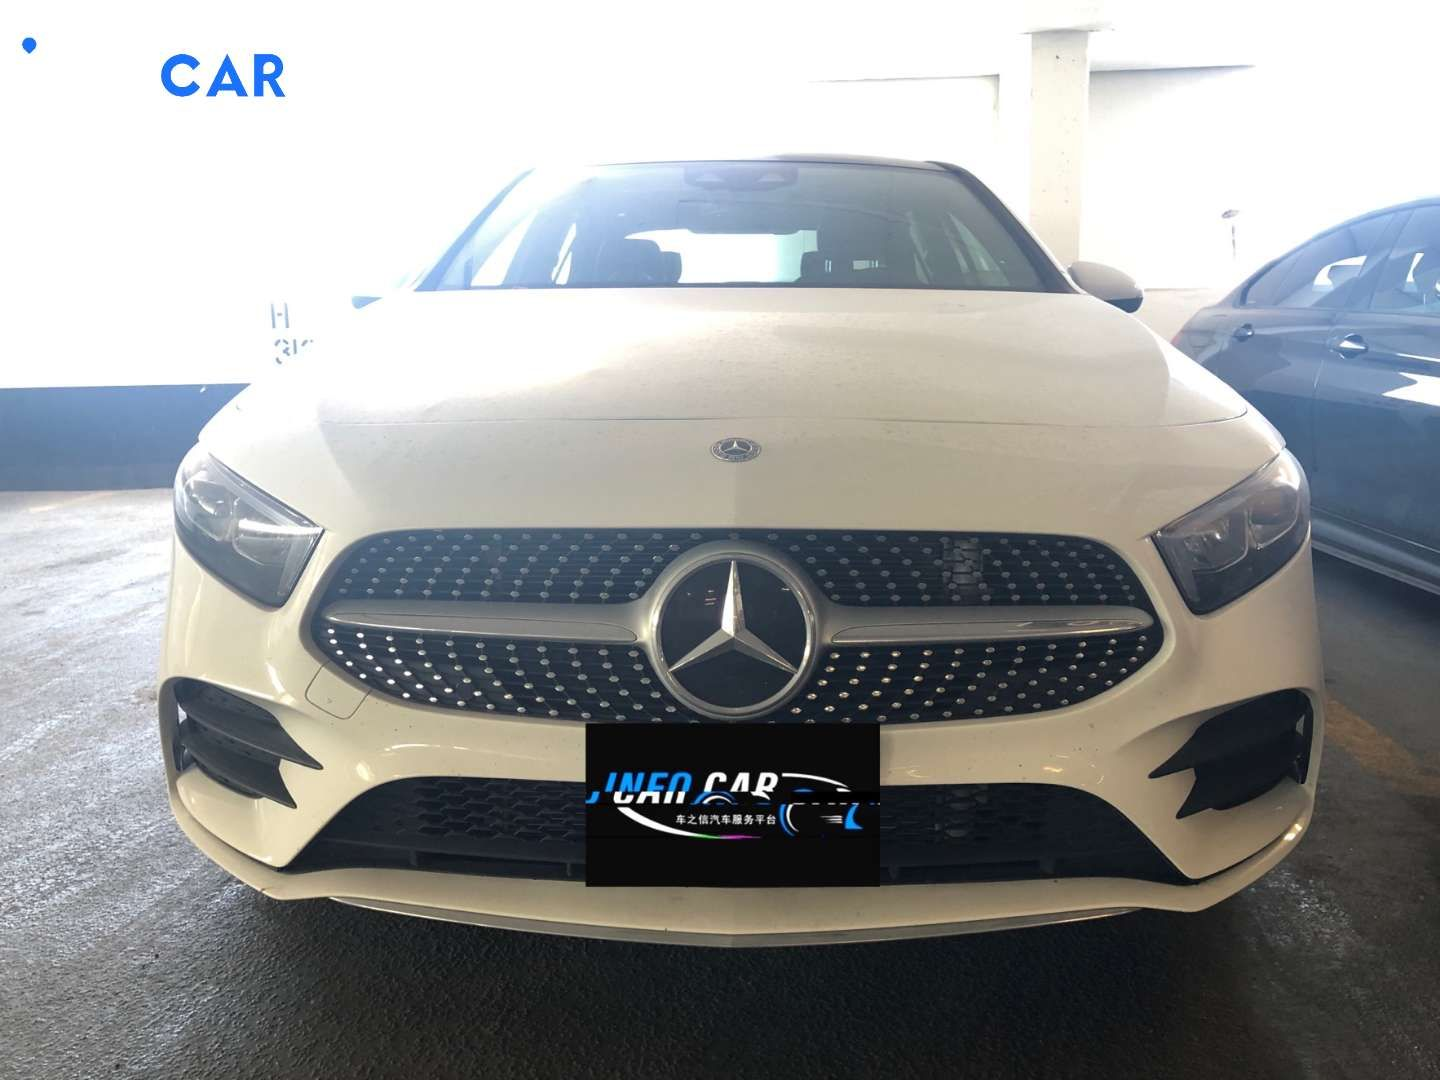 2019 Mercedes-Benz A-Class 220 - INFOCAR - Toronto's Most Comprehensive New and Used Auto Trading Platform